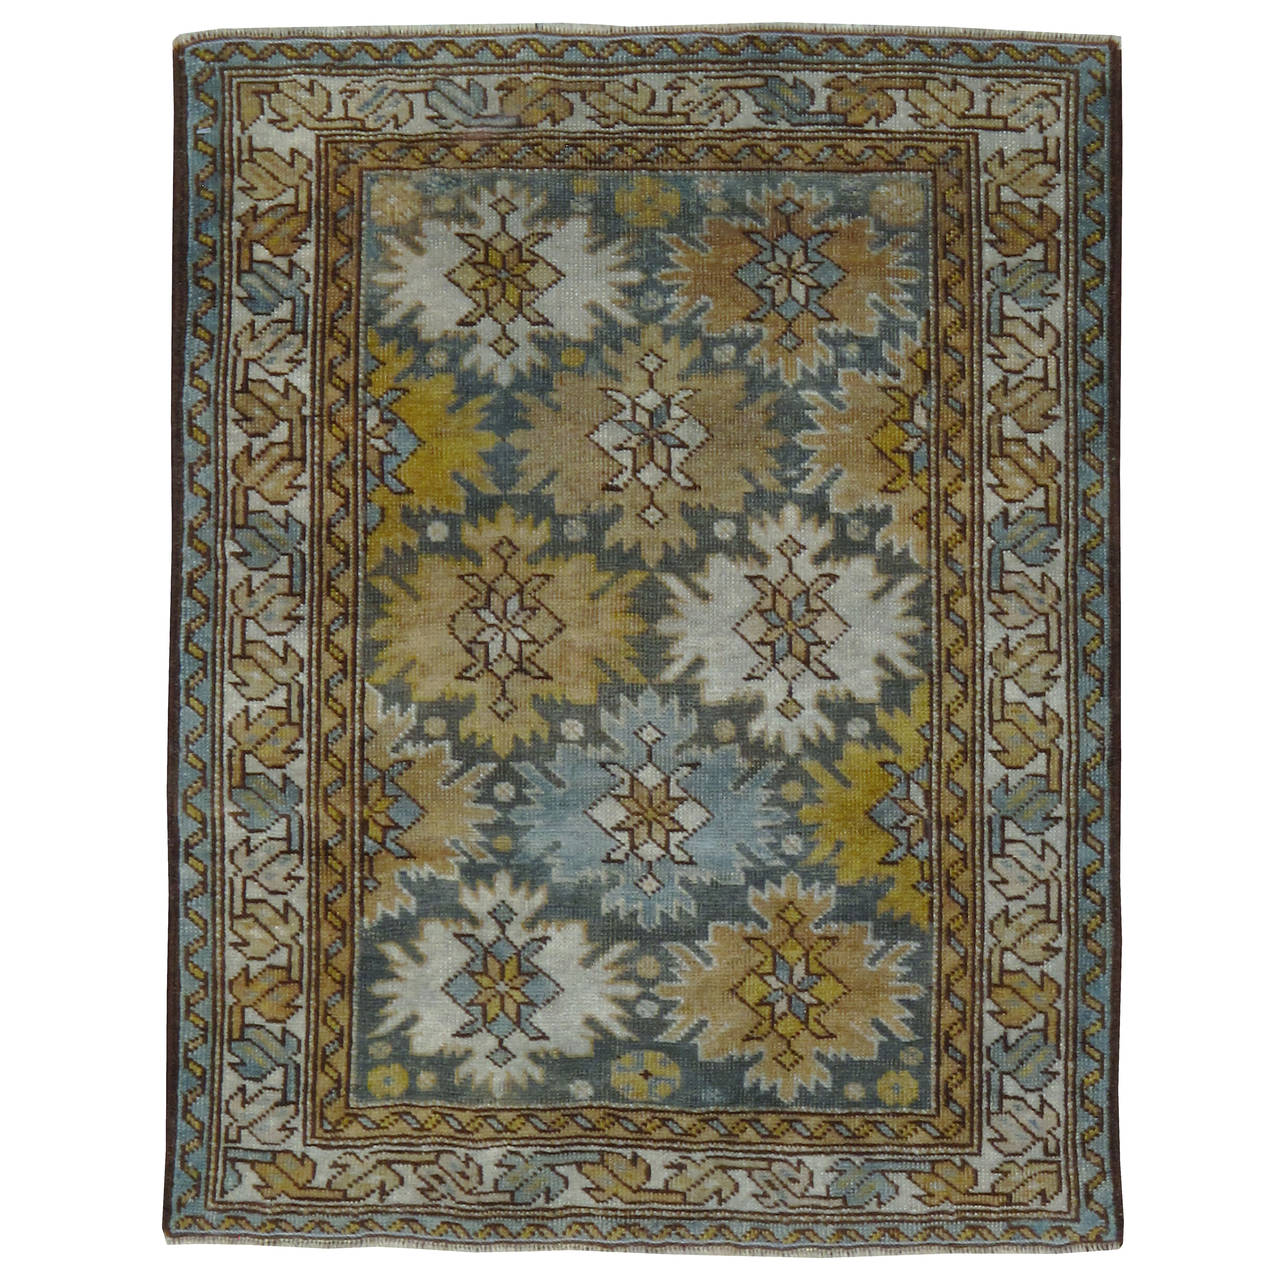 Vintage Throw Rugs: Antique Caucasian Throw Rug At 1stdibs